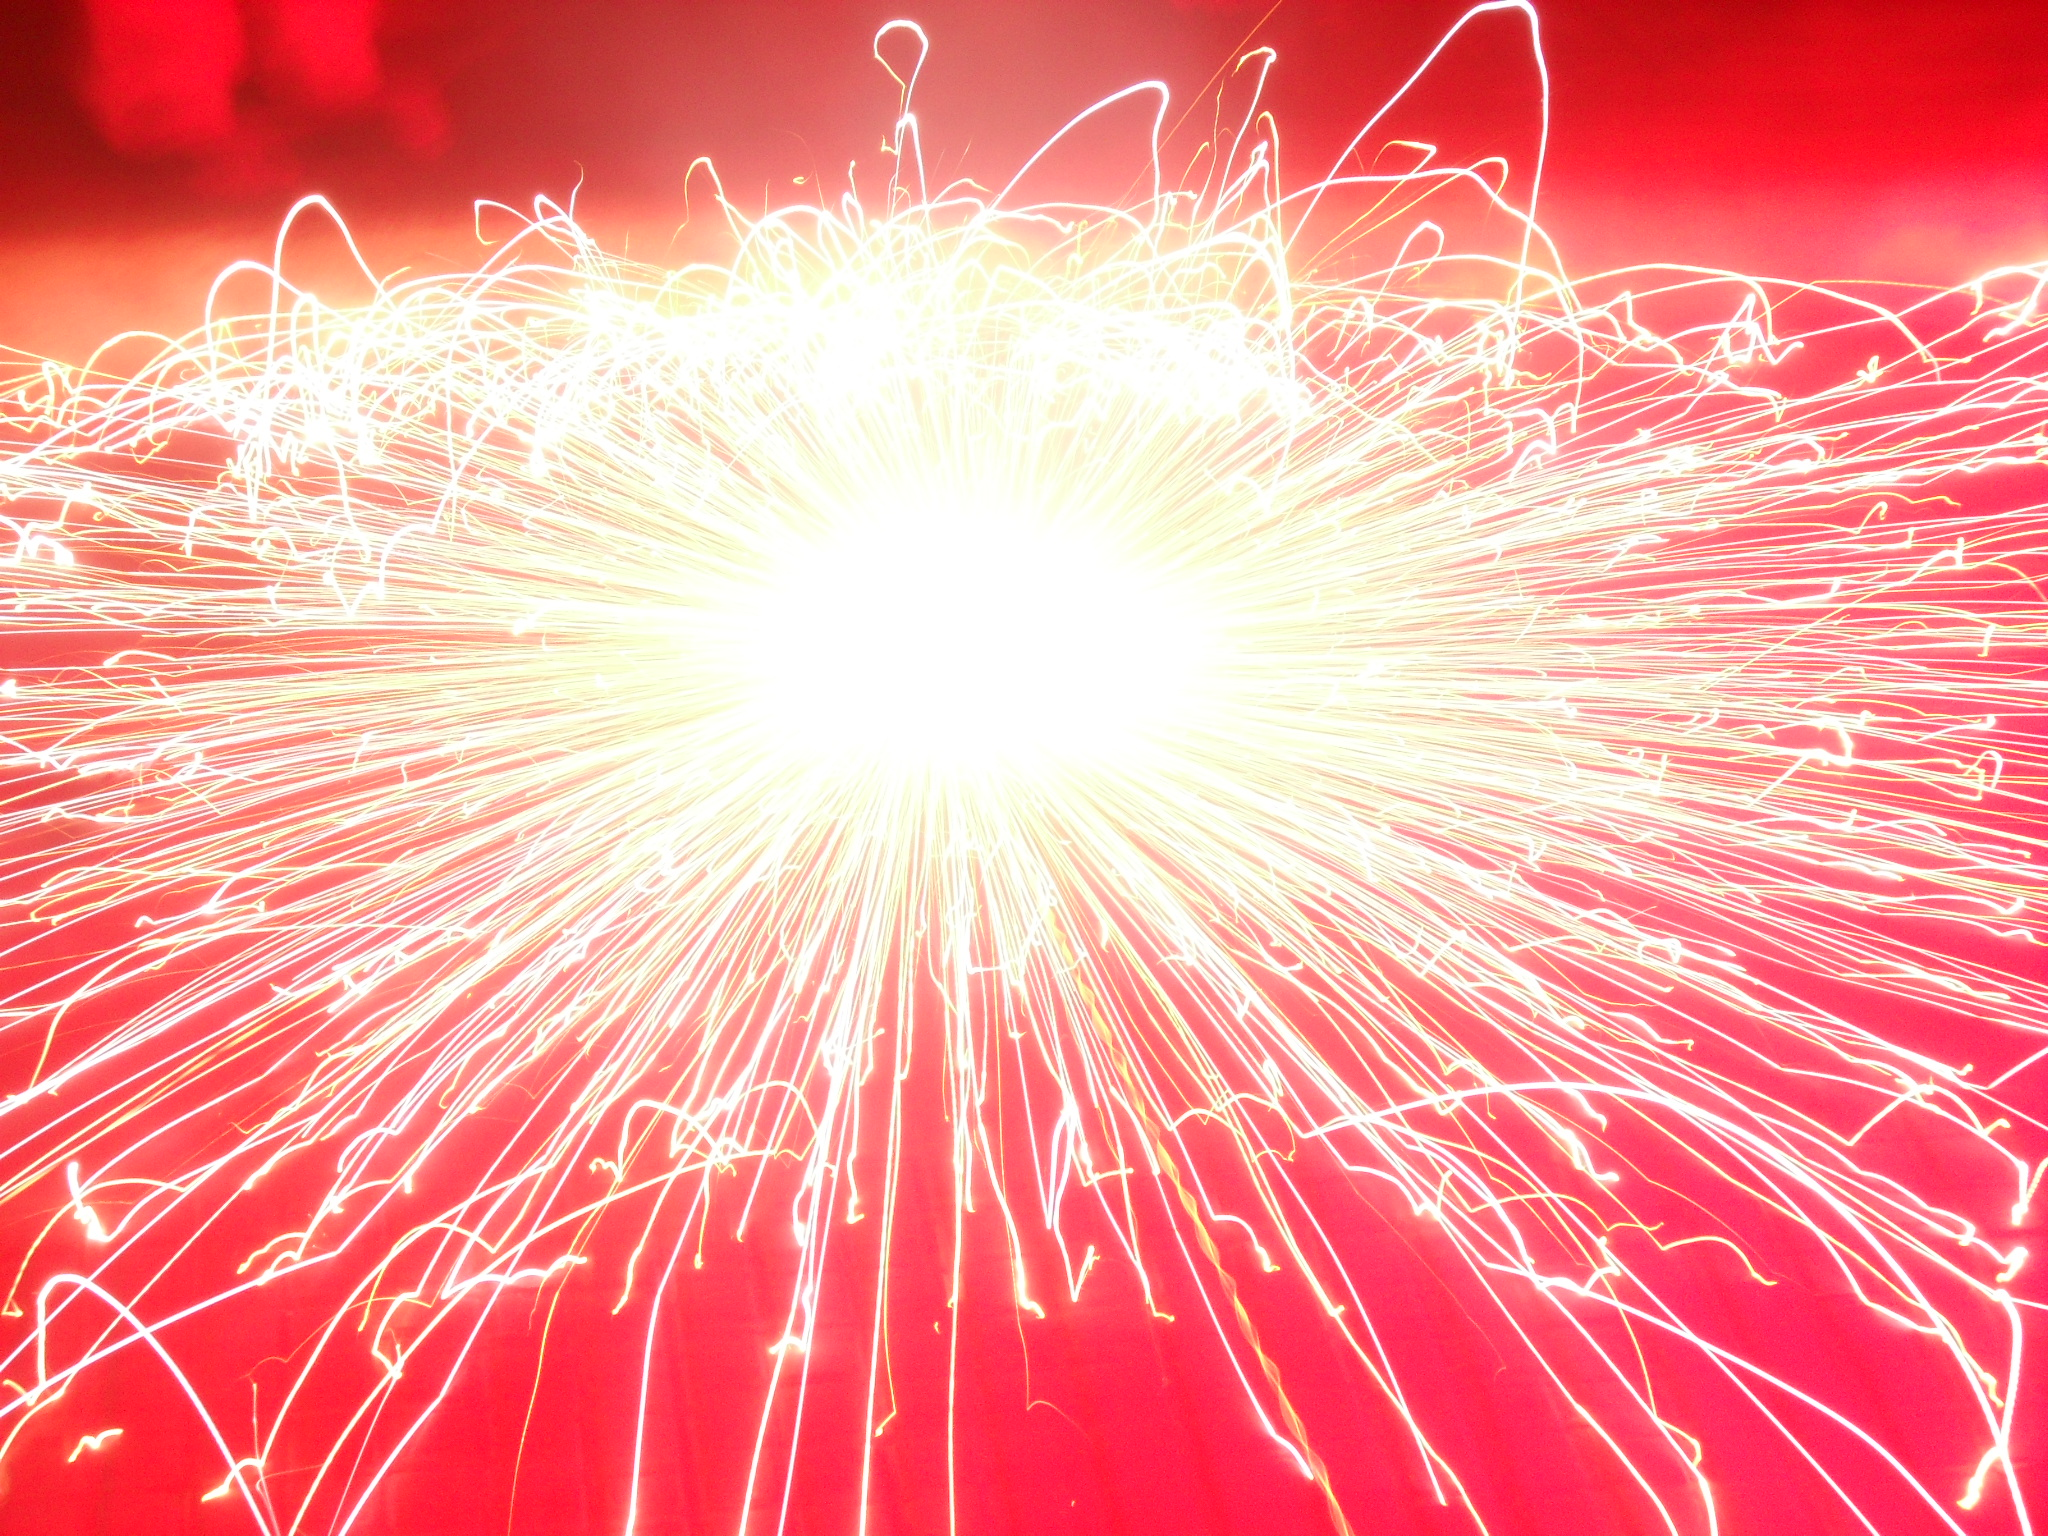 File:Diwali crackers - chakra.JPG - Wikimedia Commons